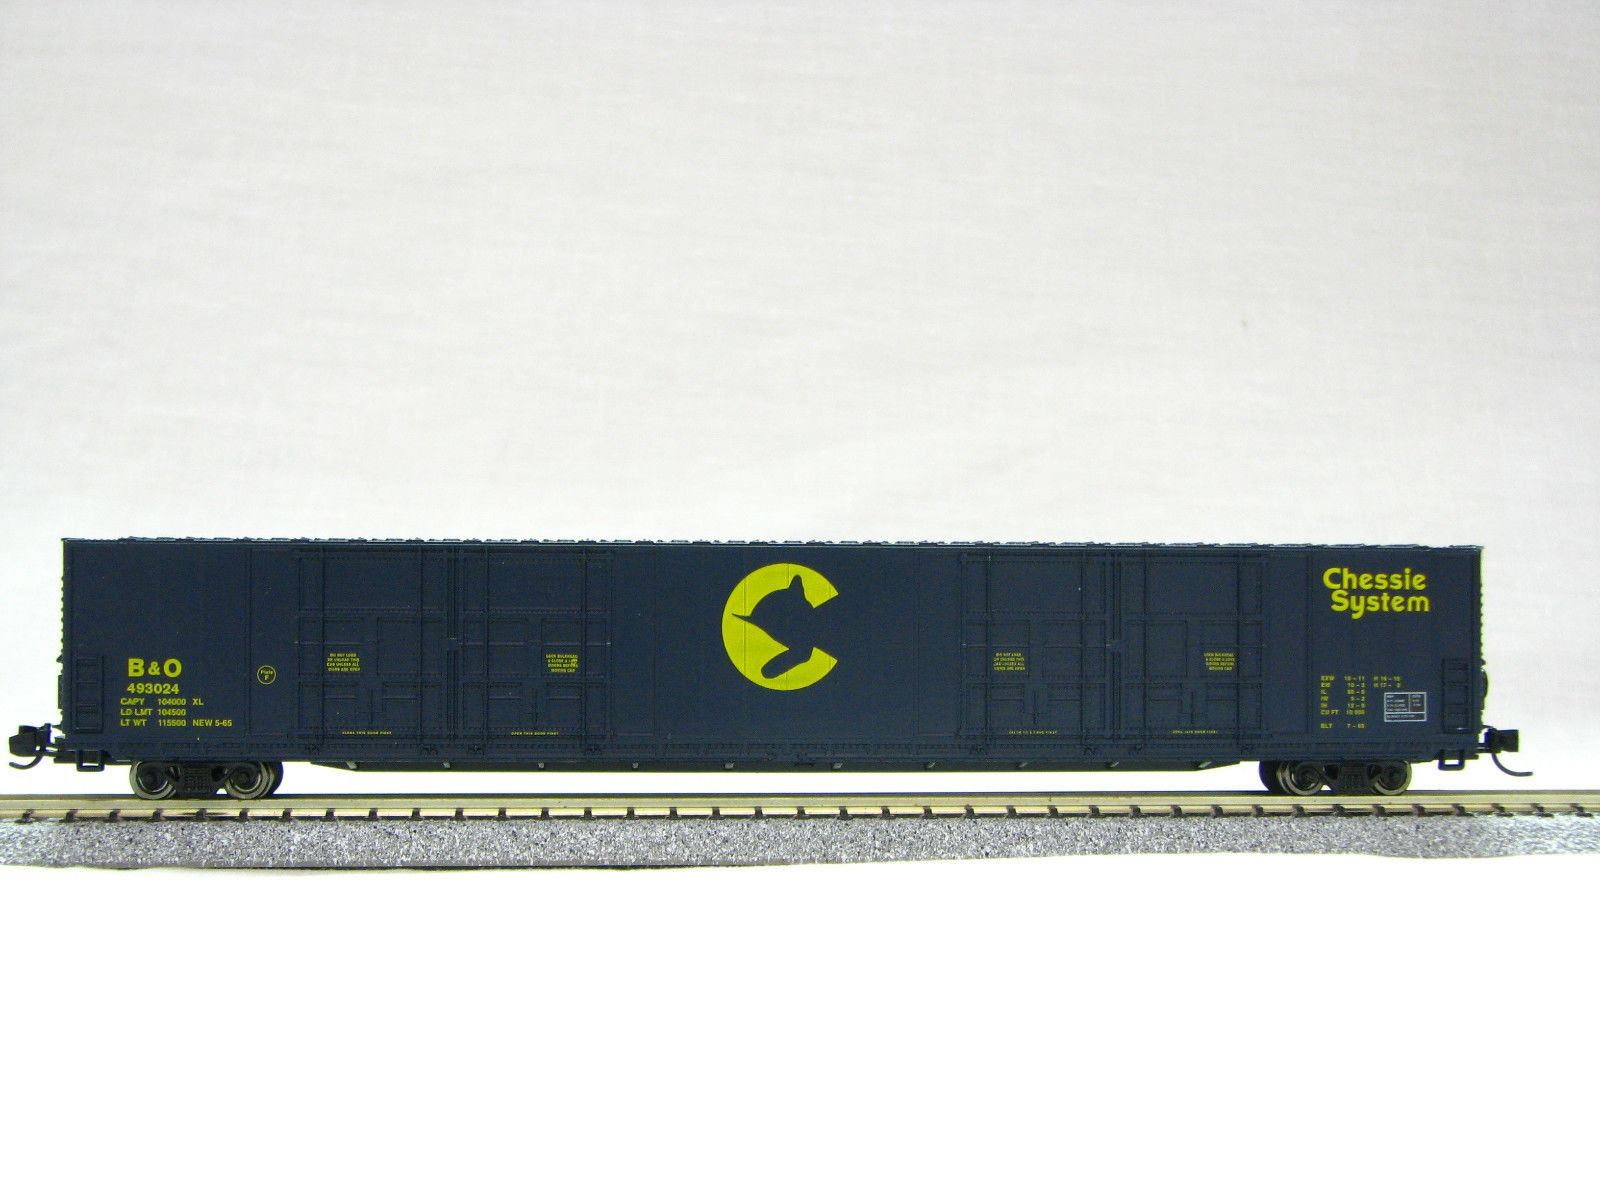 N Scale 8 Door 85 Ft Hi-Cube, Chessie System (with MT couplers) 01-014635